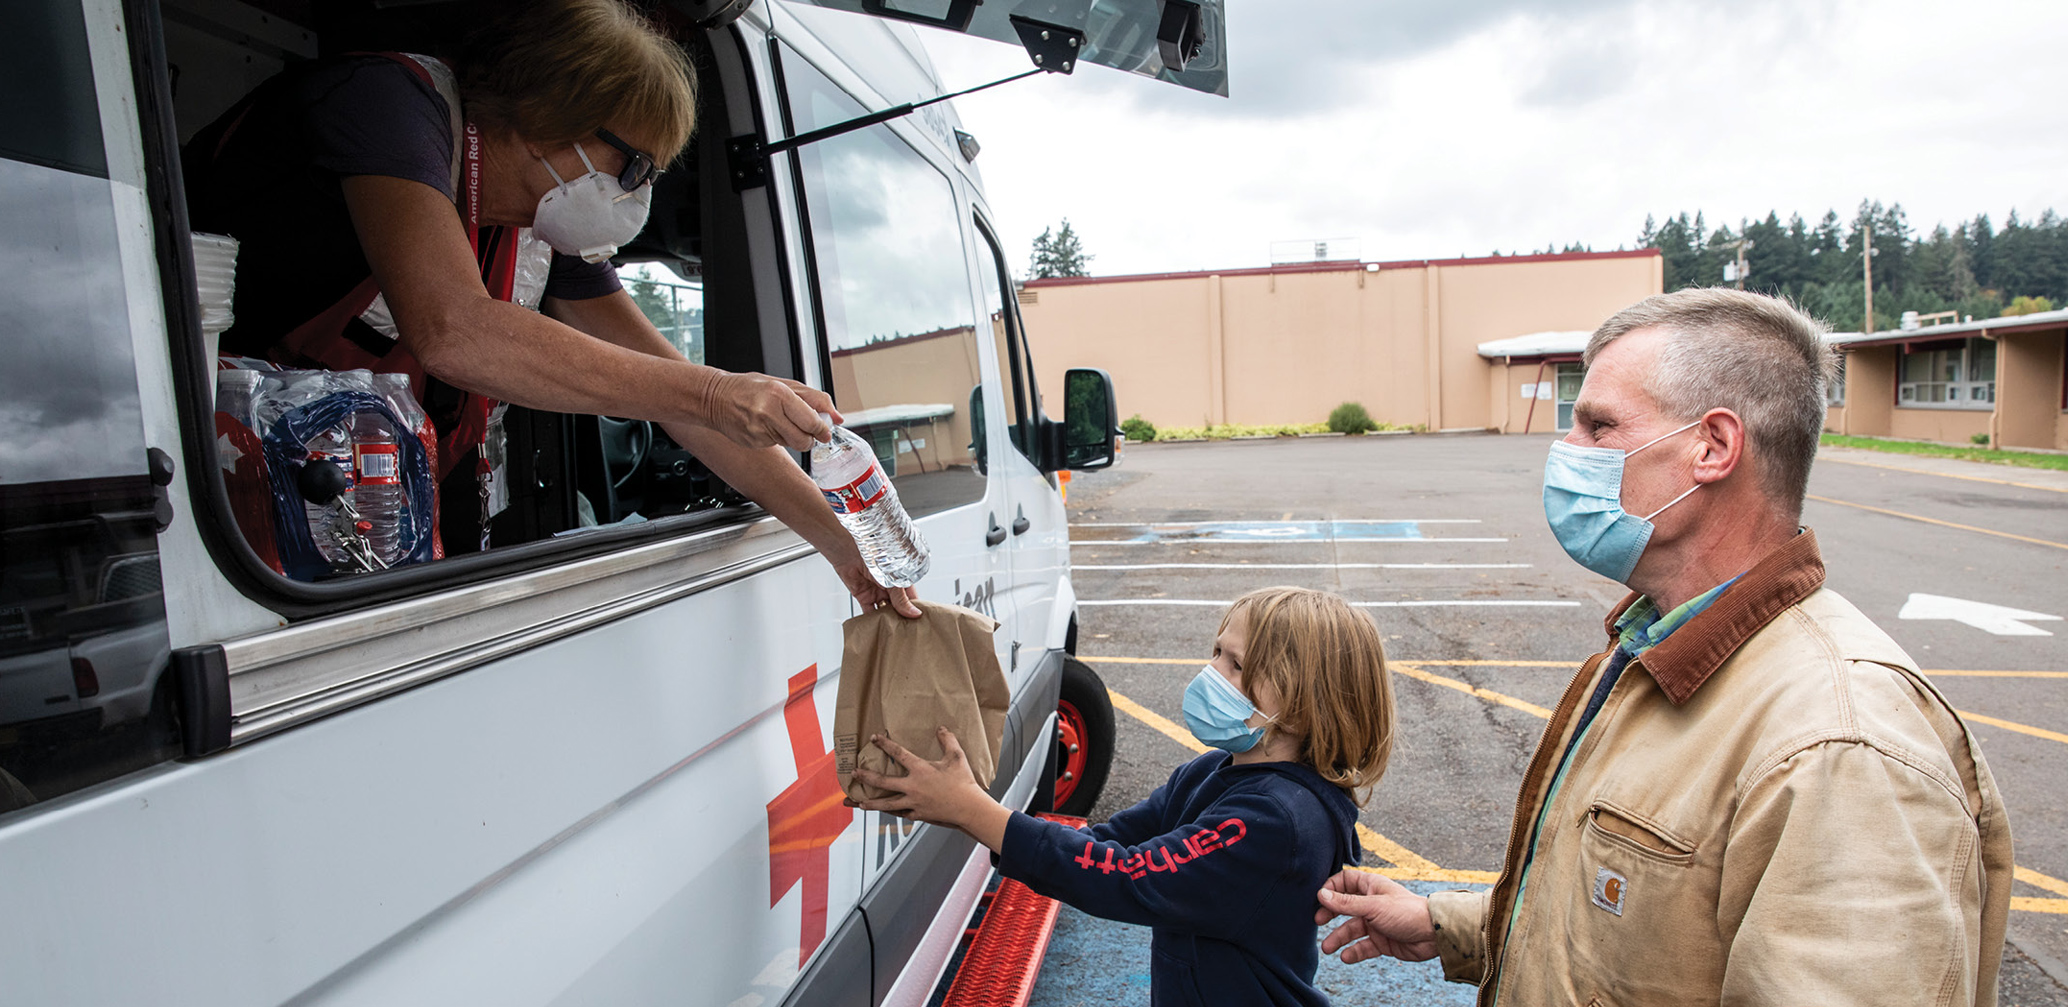 Lyons, Oregon. American Red Cross volunteer Deb McDaniel hands a meal to Jaden,8 years old, and Gary at a supply pick-up location of the American Red Cross